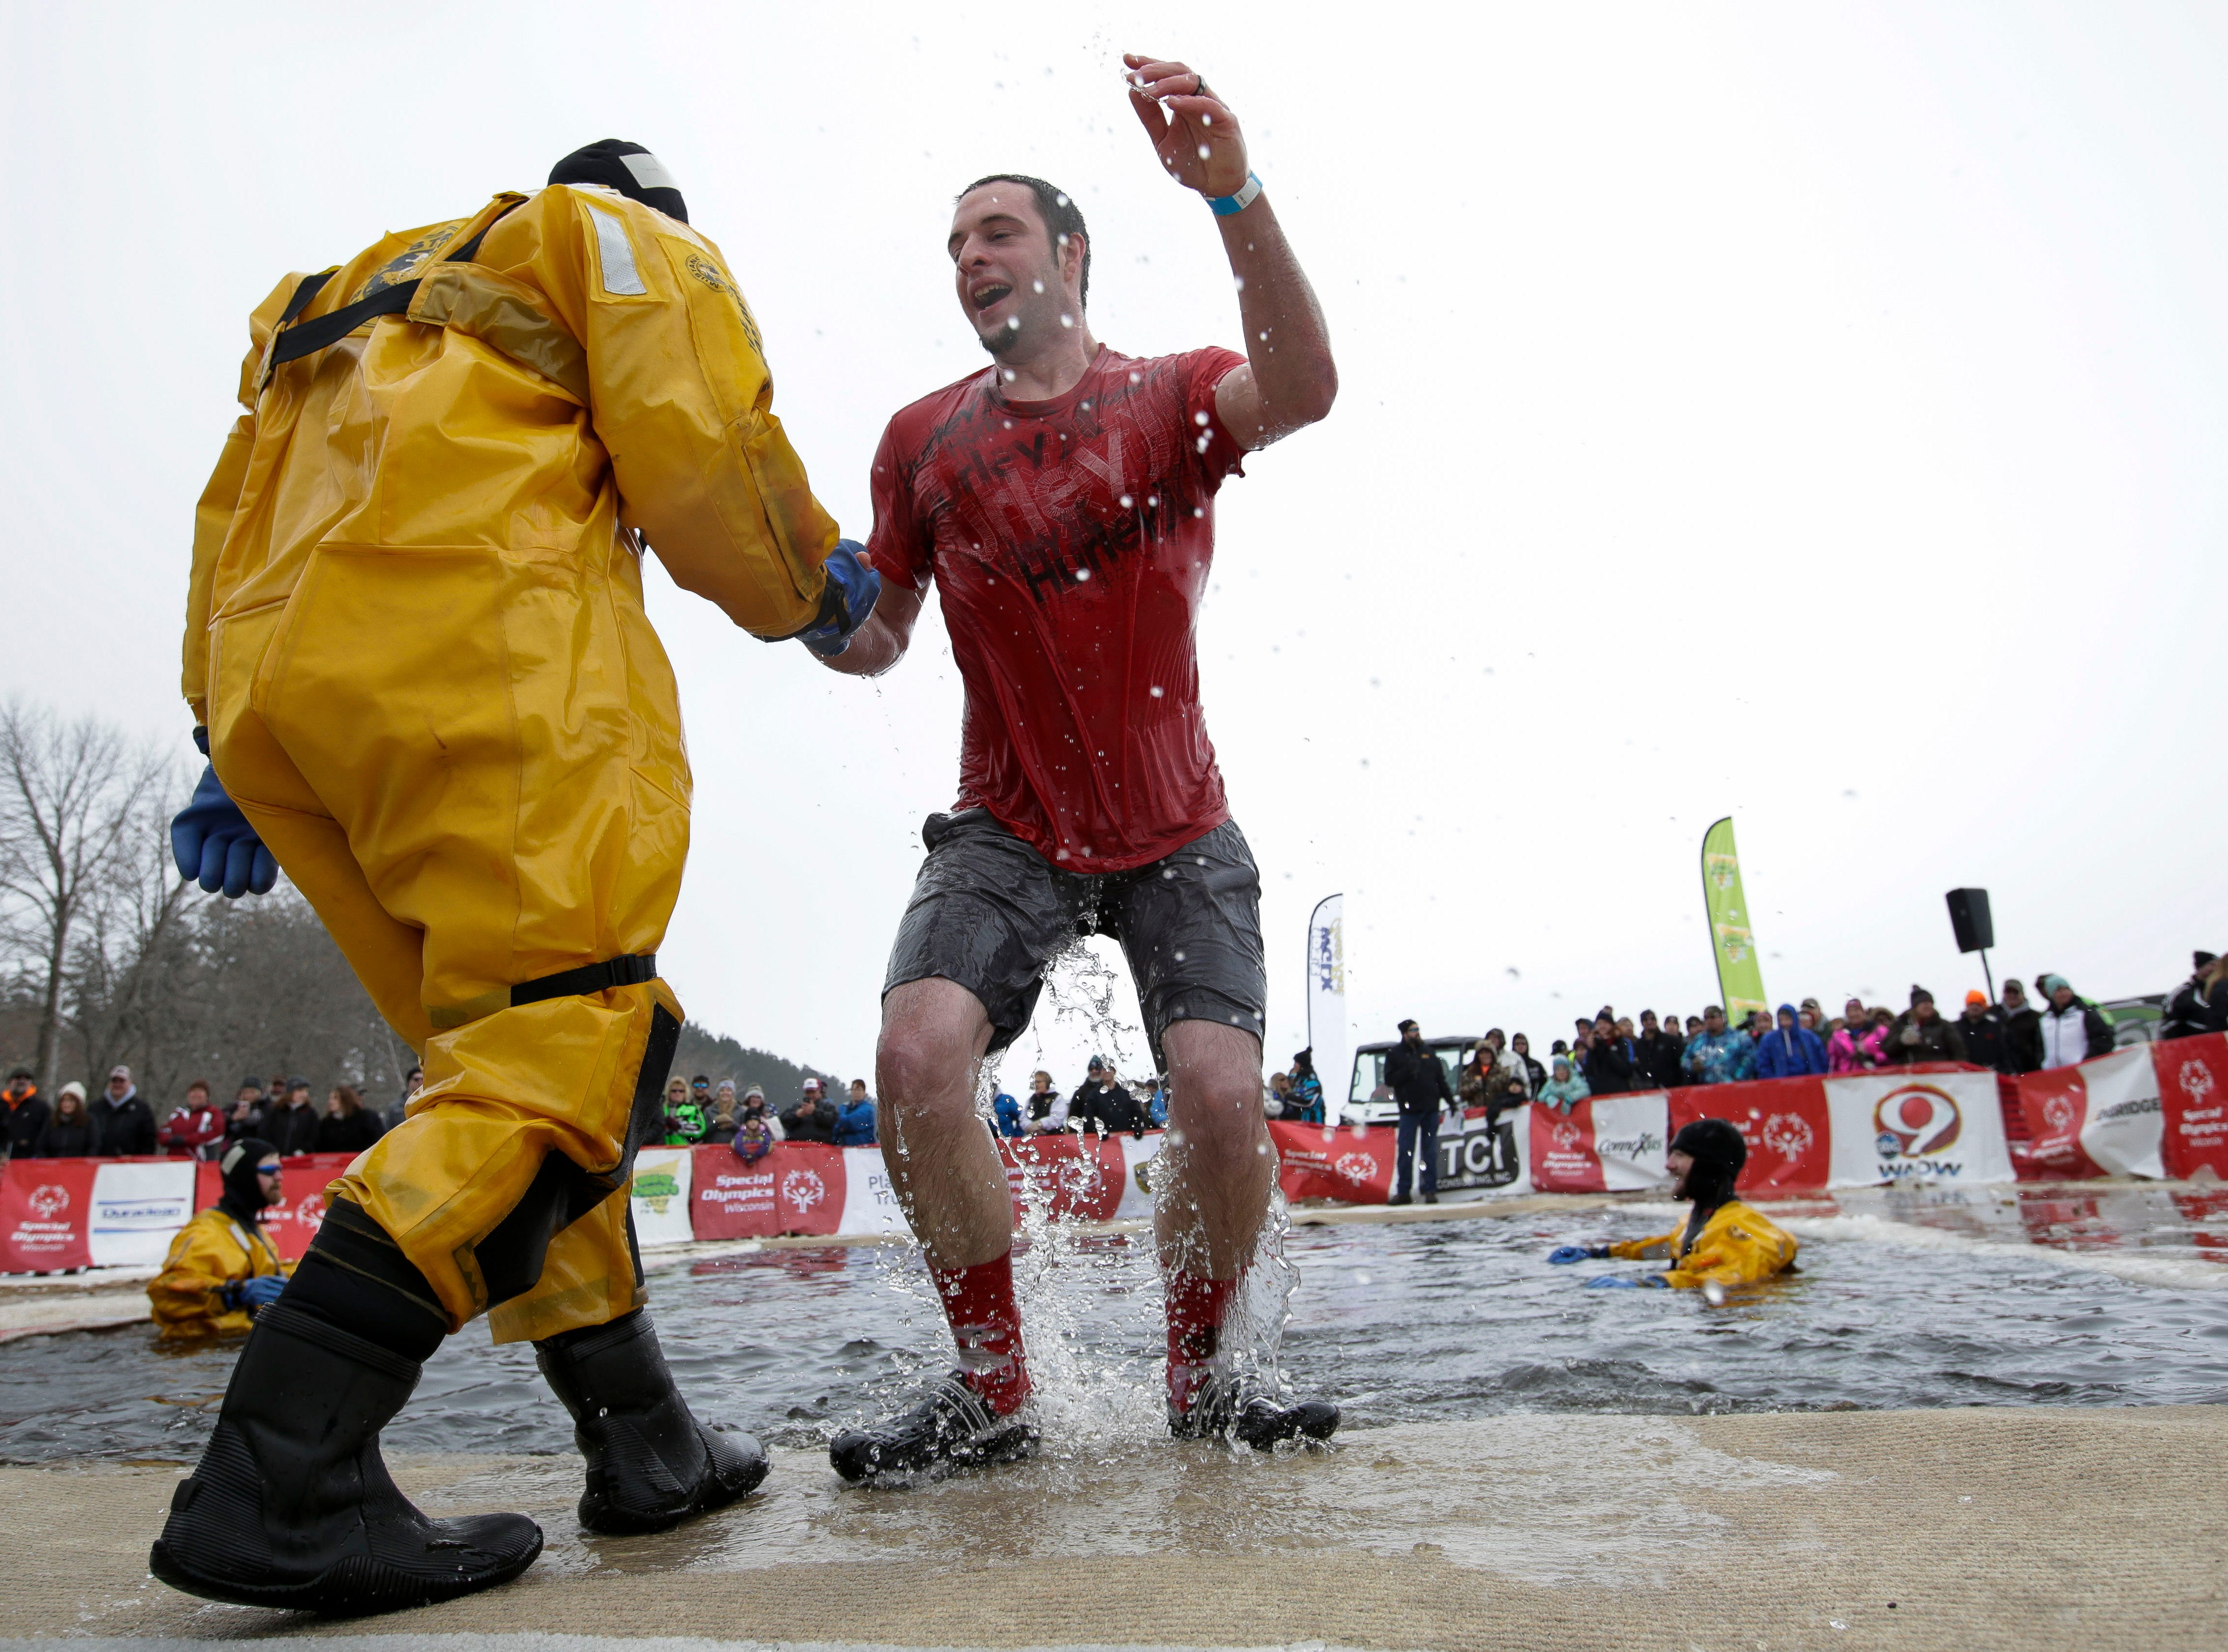 A participant exits the water after taking the polar plunge on Saturday, February 2, 2019, at Anchor Bay Bar and Grill in Biron, Wis. The event was one of many polar plunges across the state held as fundraisers for Special Olympics Wisconsin.Tork Mason/USA TODAY NETWORK-Wisconsin